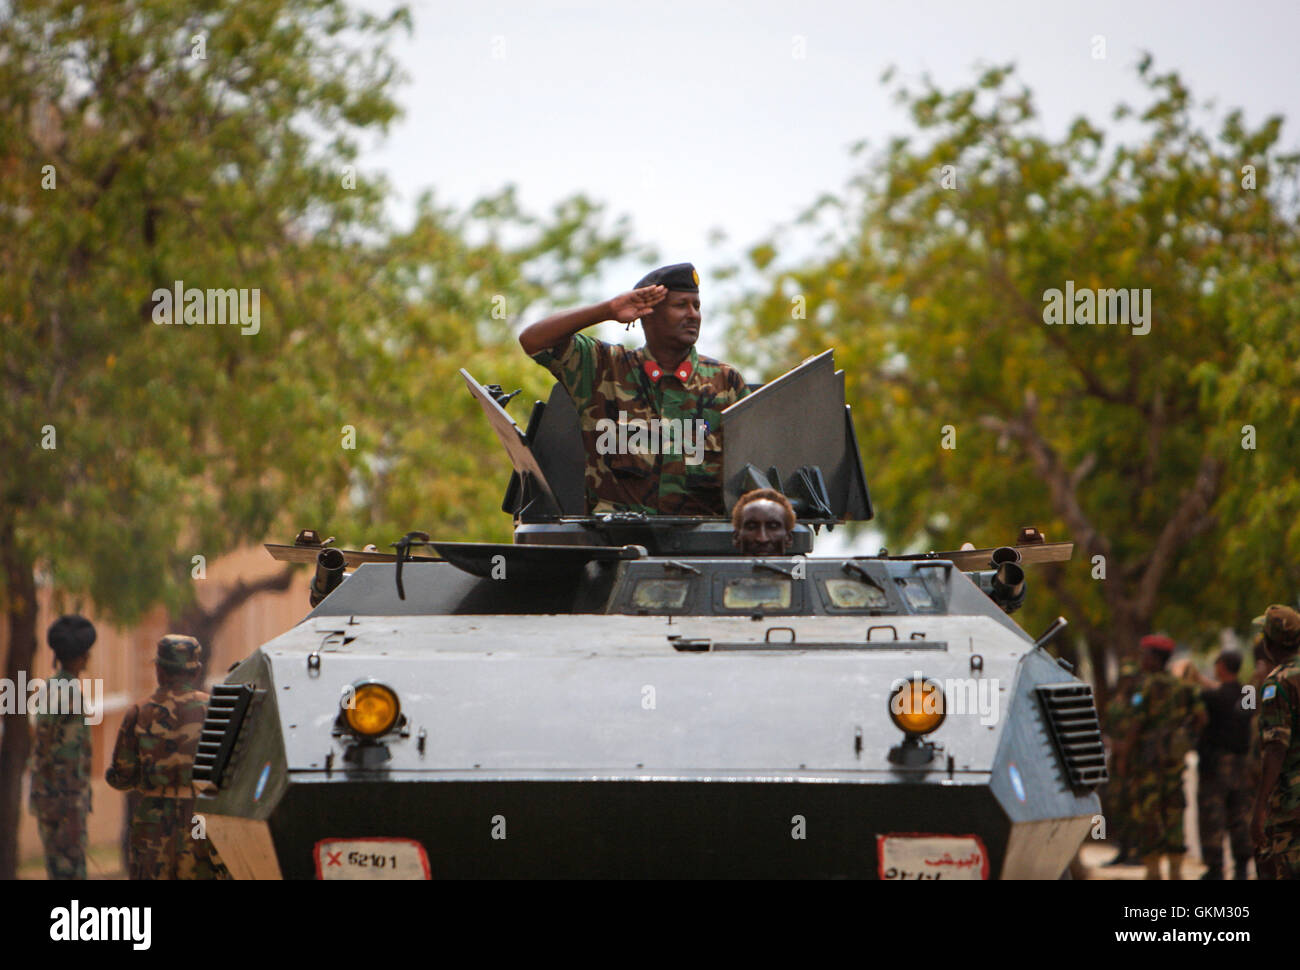 SOMALIA, Mogadishu: In photograph taken and released by the African Union-United Nations Information Support Team 12 April 2013, a gunner of an armoured personnel carrier of the Somali National Army salutes during a military parade marking the 53rd Anniversary of the SNA held at the newly refurbished Ministry of Defence in the Somali capital Mogadishu. Somalia is rebuilding it's army, along with many state institutions and facilities after being racked by years of internal conflict and division and is enjoying it's longest period of relative peace since major operations by the SNA supported by Stock Photo